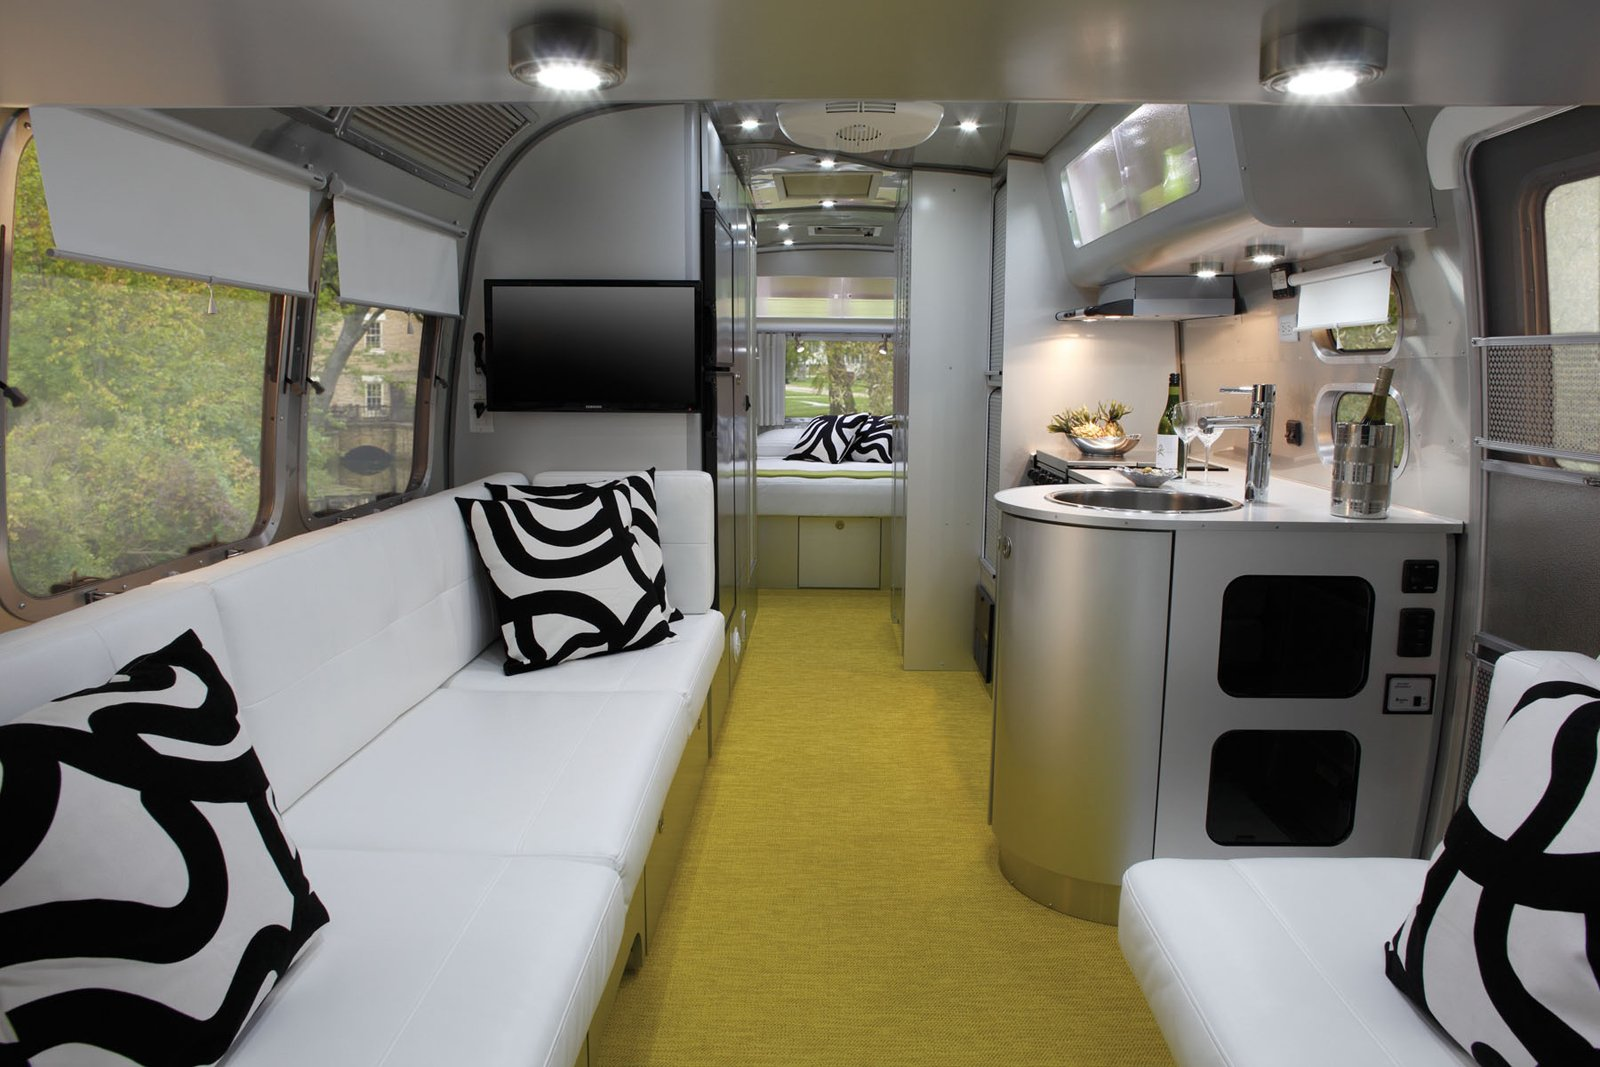 Architect Christopher C. Deam, Dwell founder Lara Deam's husband, designed Airstream's newest travel trailer, the International Sterling.  8 Ways to Renovate an Airstream by Erika Heet from Airstreams We Love